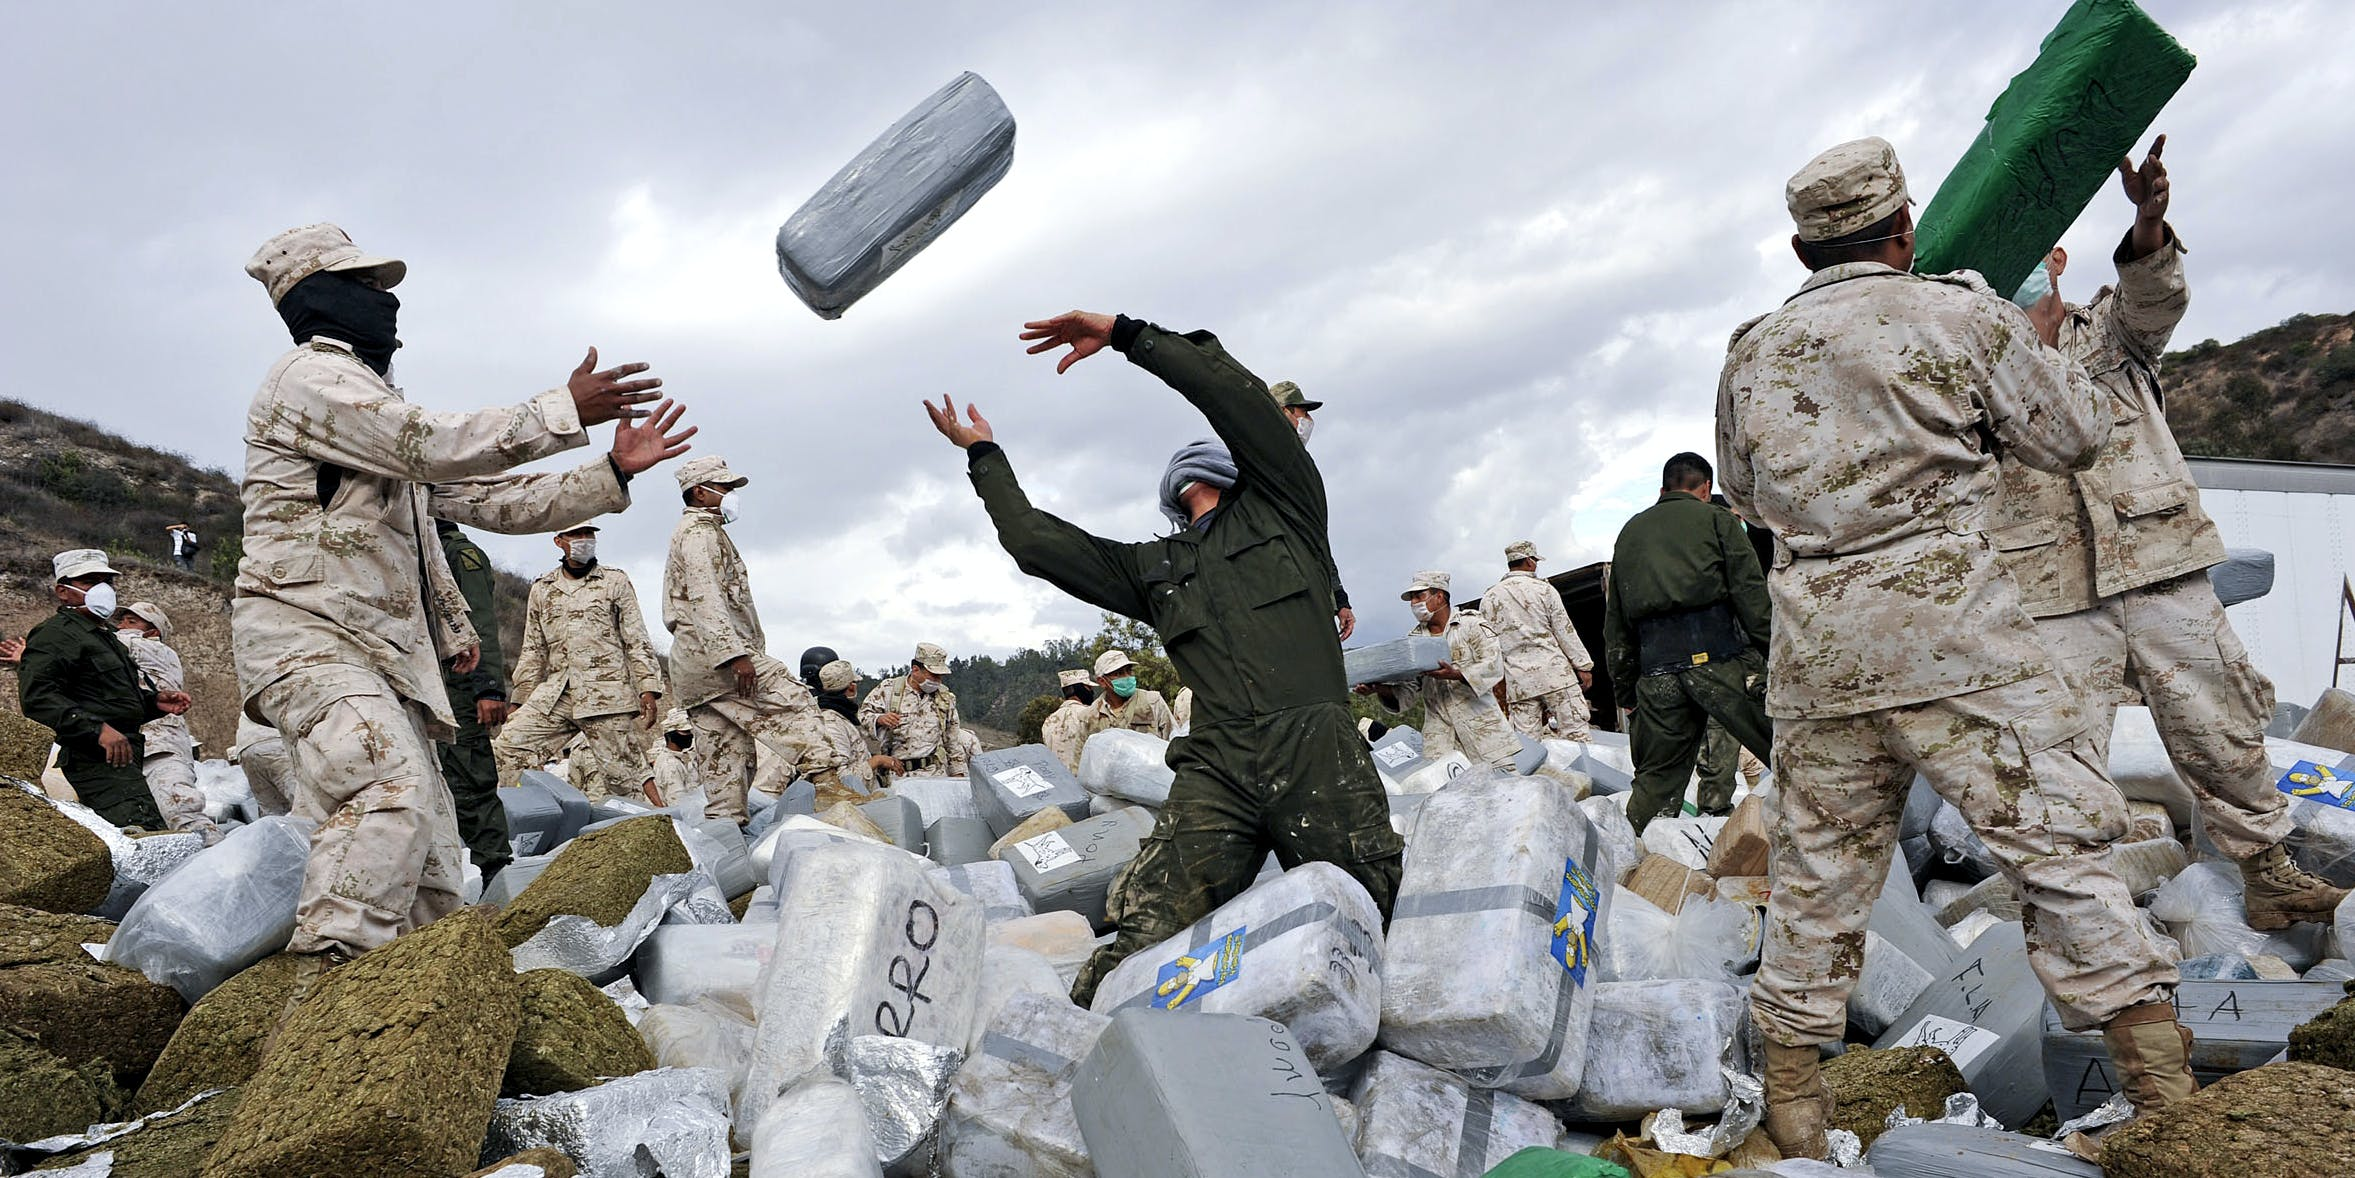 Mexican soldiers unload bundles of seized marijuana before incinerating the drugs at a military base in Tijuana, Mexico, on Wednesday, Oct. 20, 2010. Authorities carried out the biggest marijuana bust in Mexico's history this week when approximately 134 tons of marijuana headed for the U.S. was confiscated by soldiers and police. Mexico has impounded more than 7,400 tons of marijuana this year as part of President Felipe Calderon's fight against drug cartels.